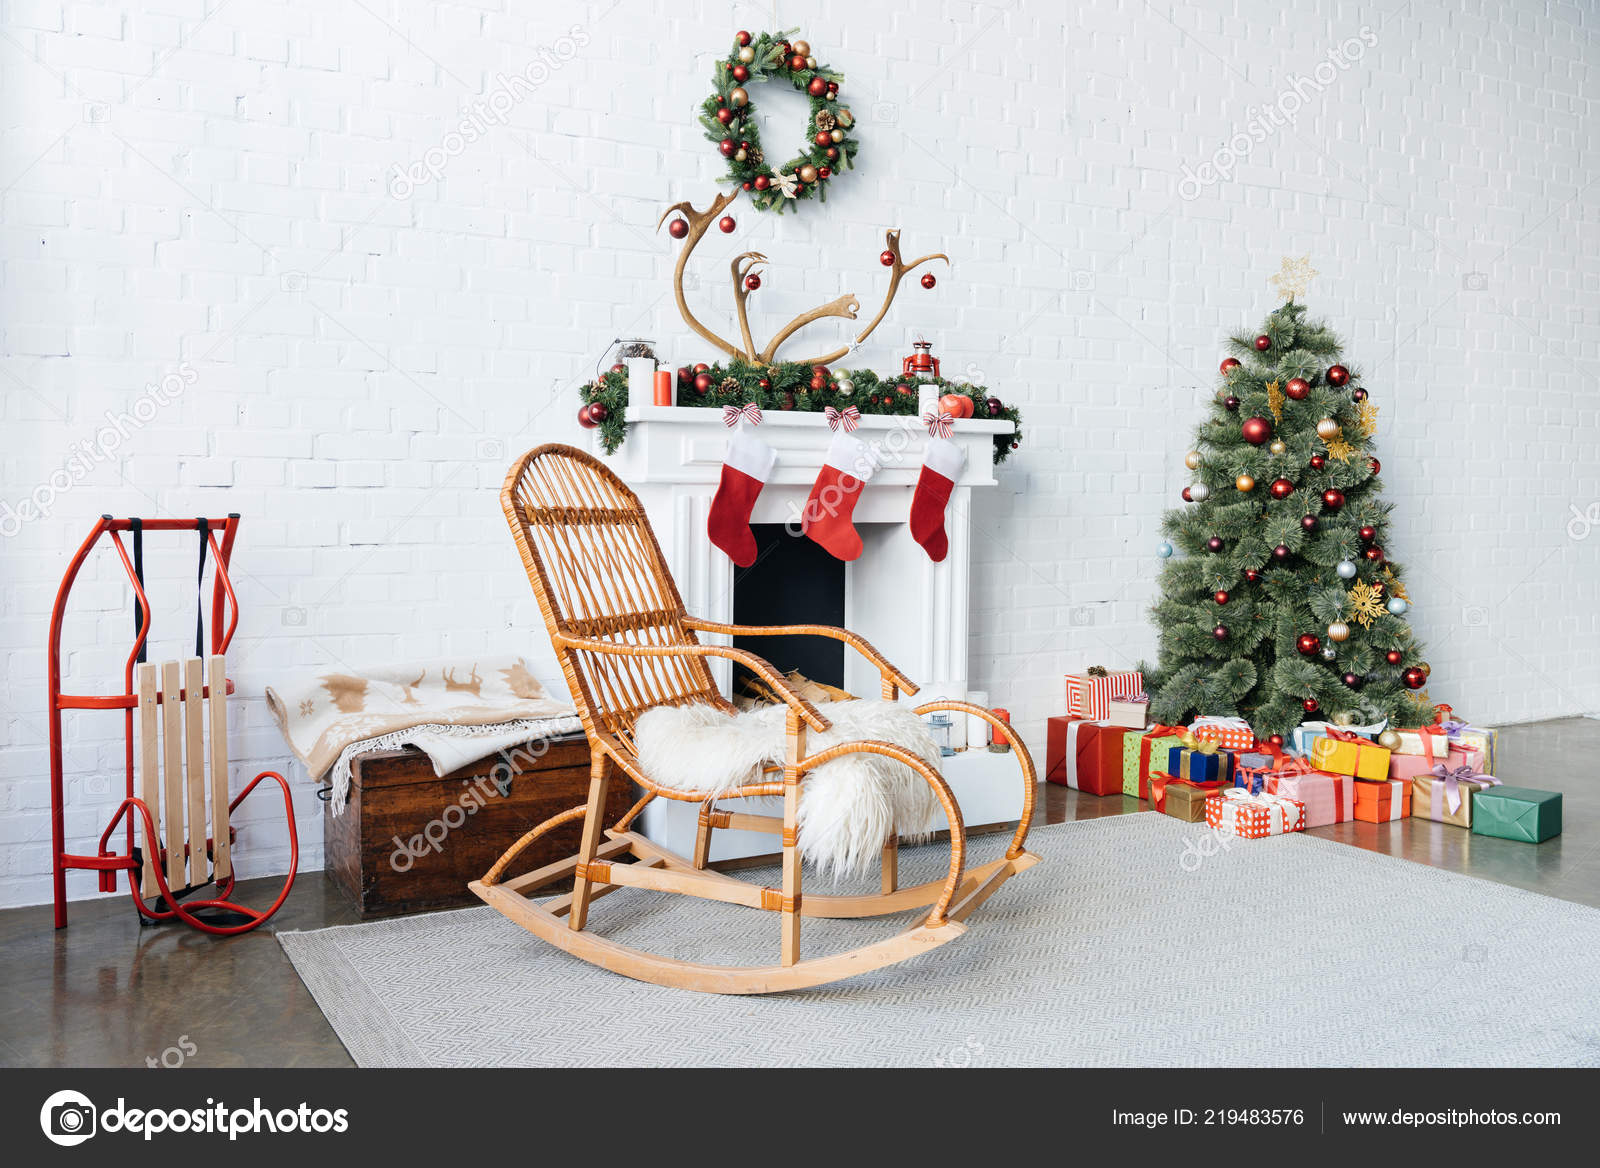 Decorated Room Rocking Chair Christmas Tree Presents Winter Holidays ...